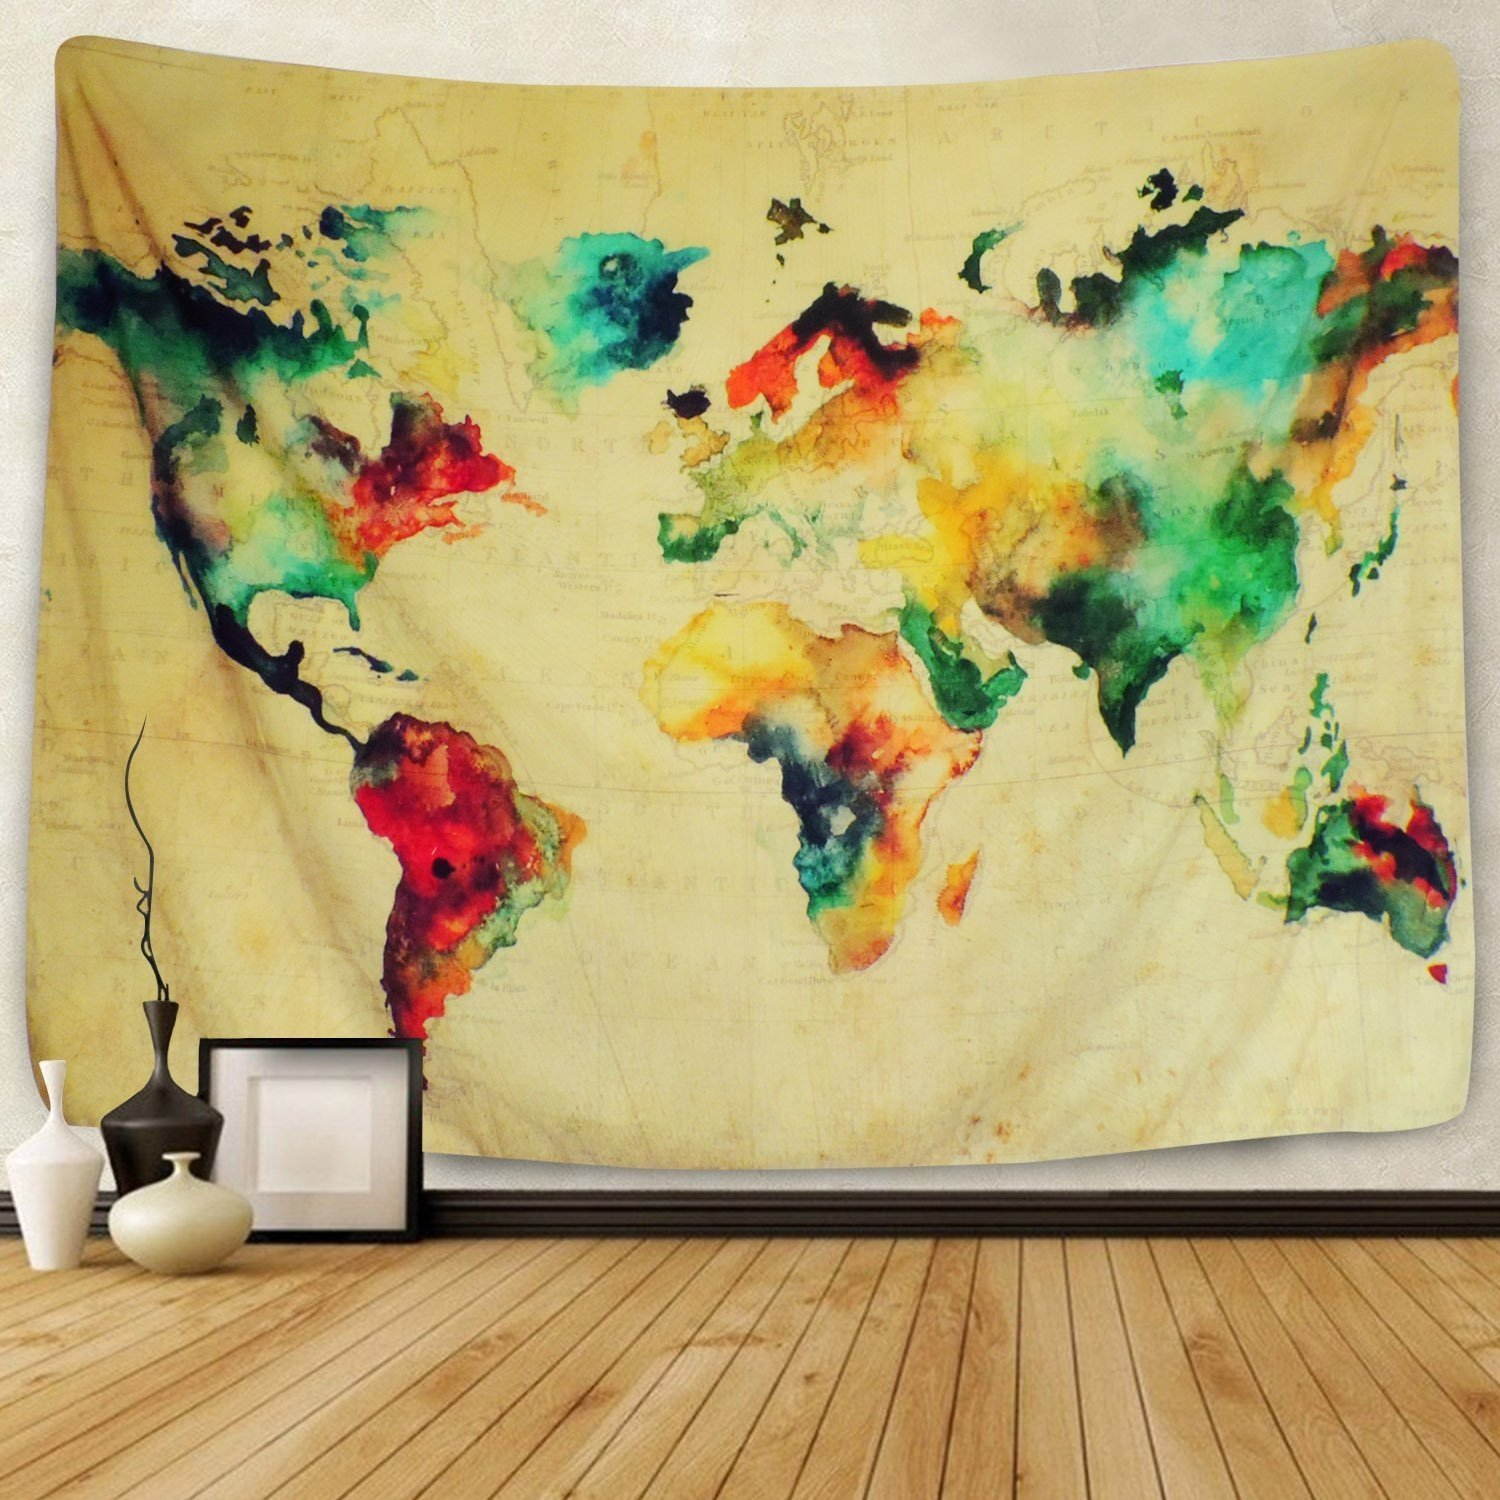 Amazon.com: Sunlightfree Retro Watercolor World Map Tapestry ...